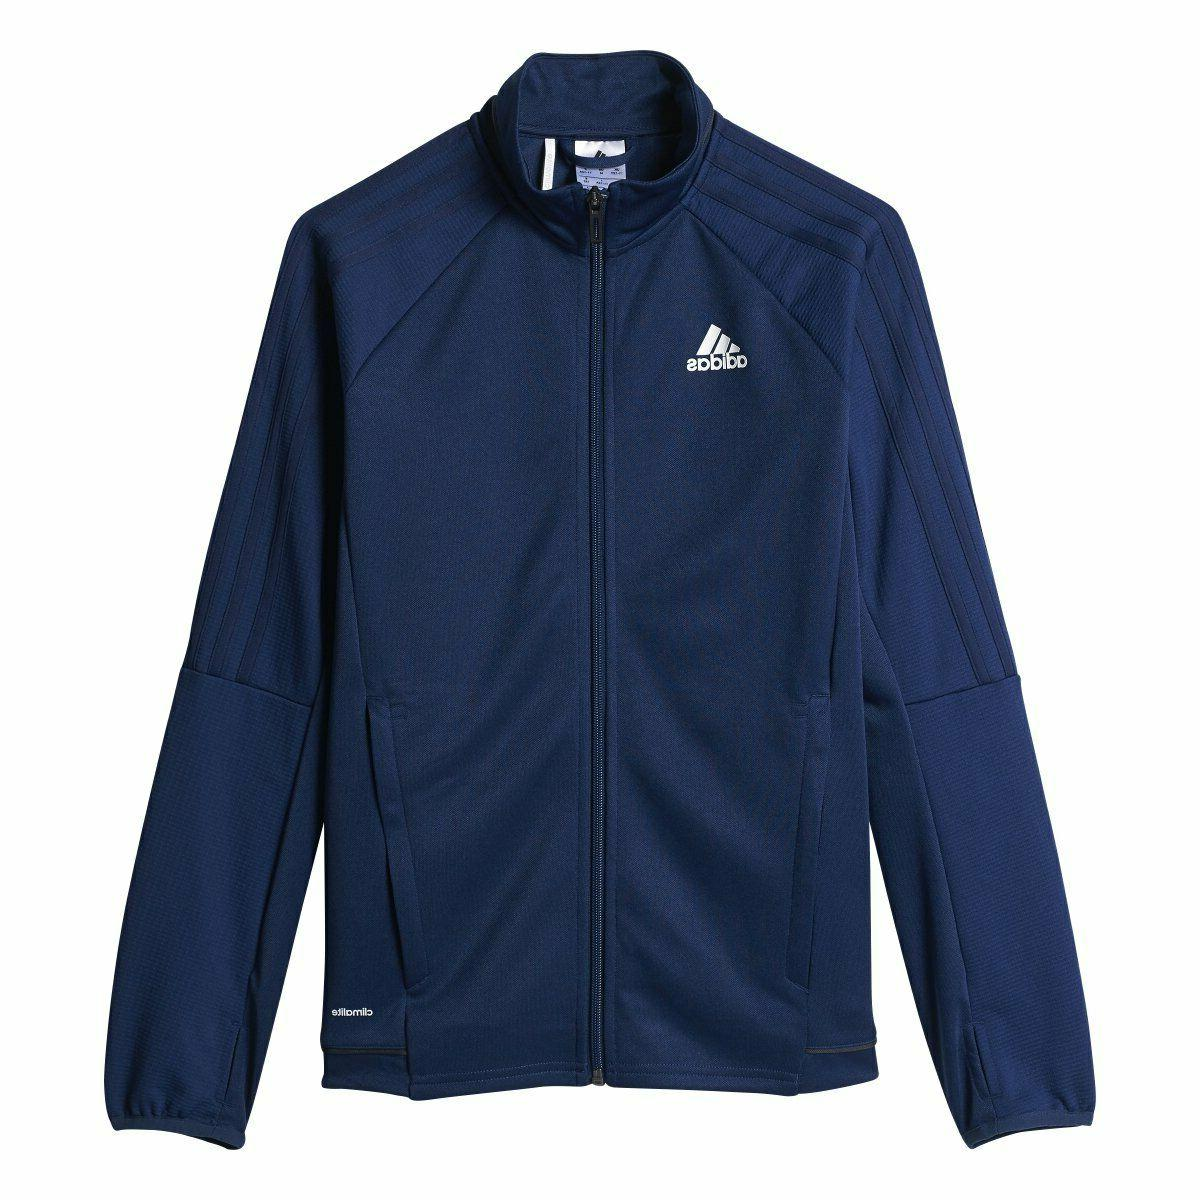 Adidas Training Jacket - BQ8199